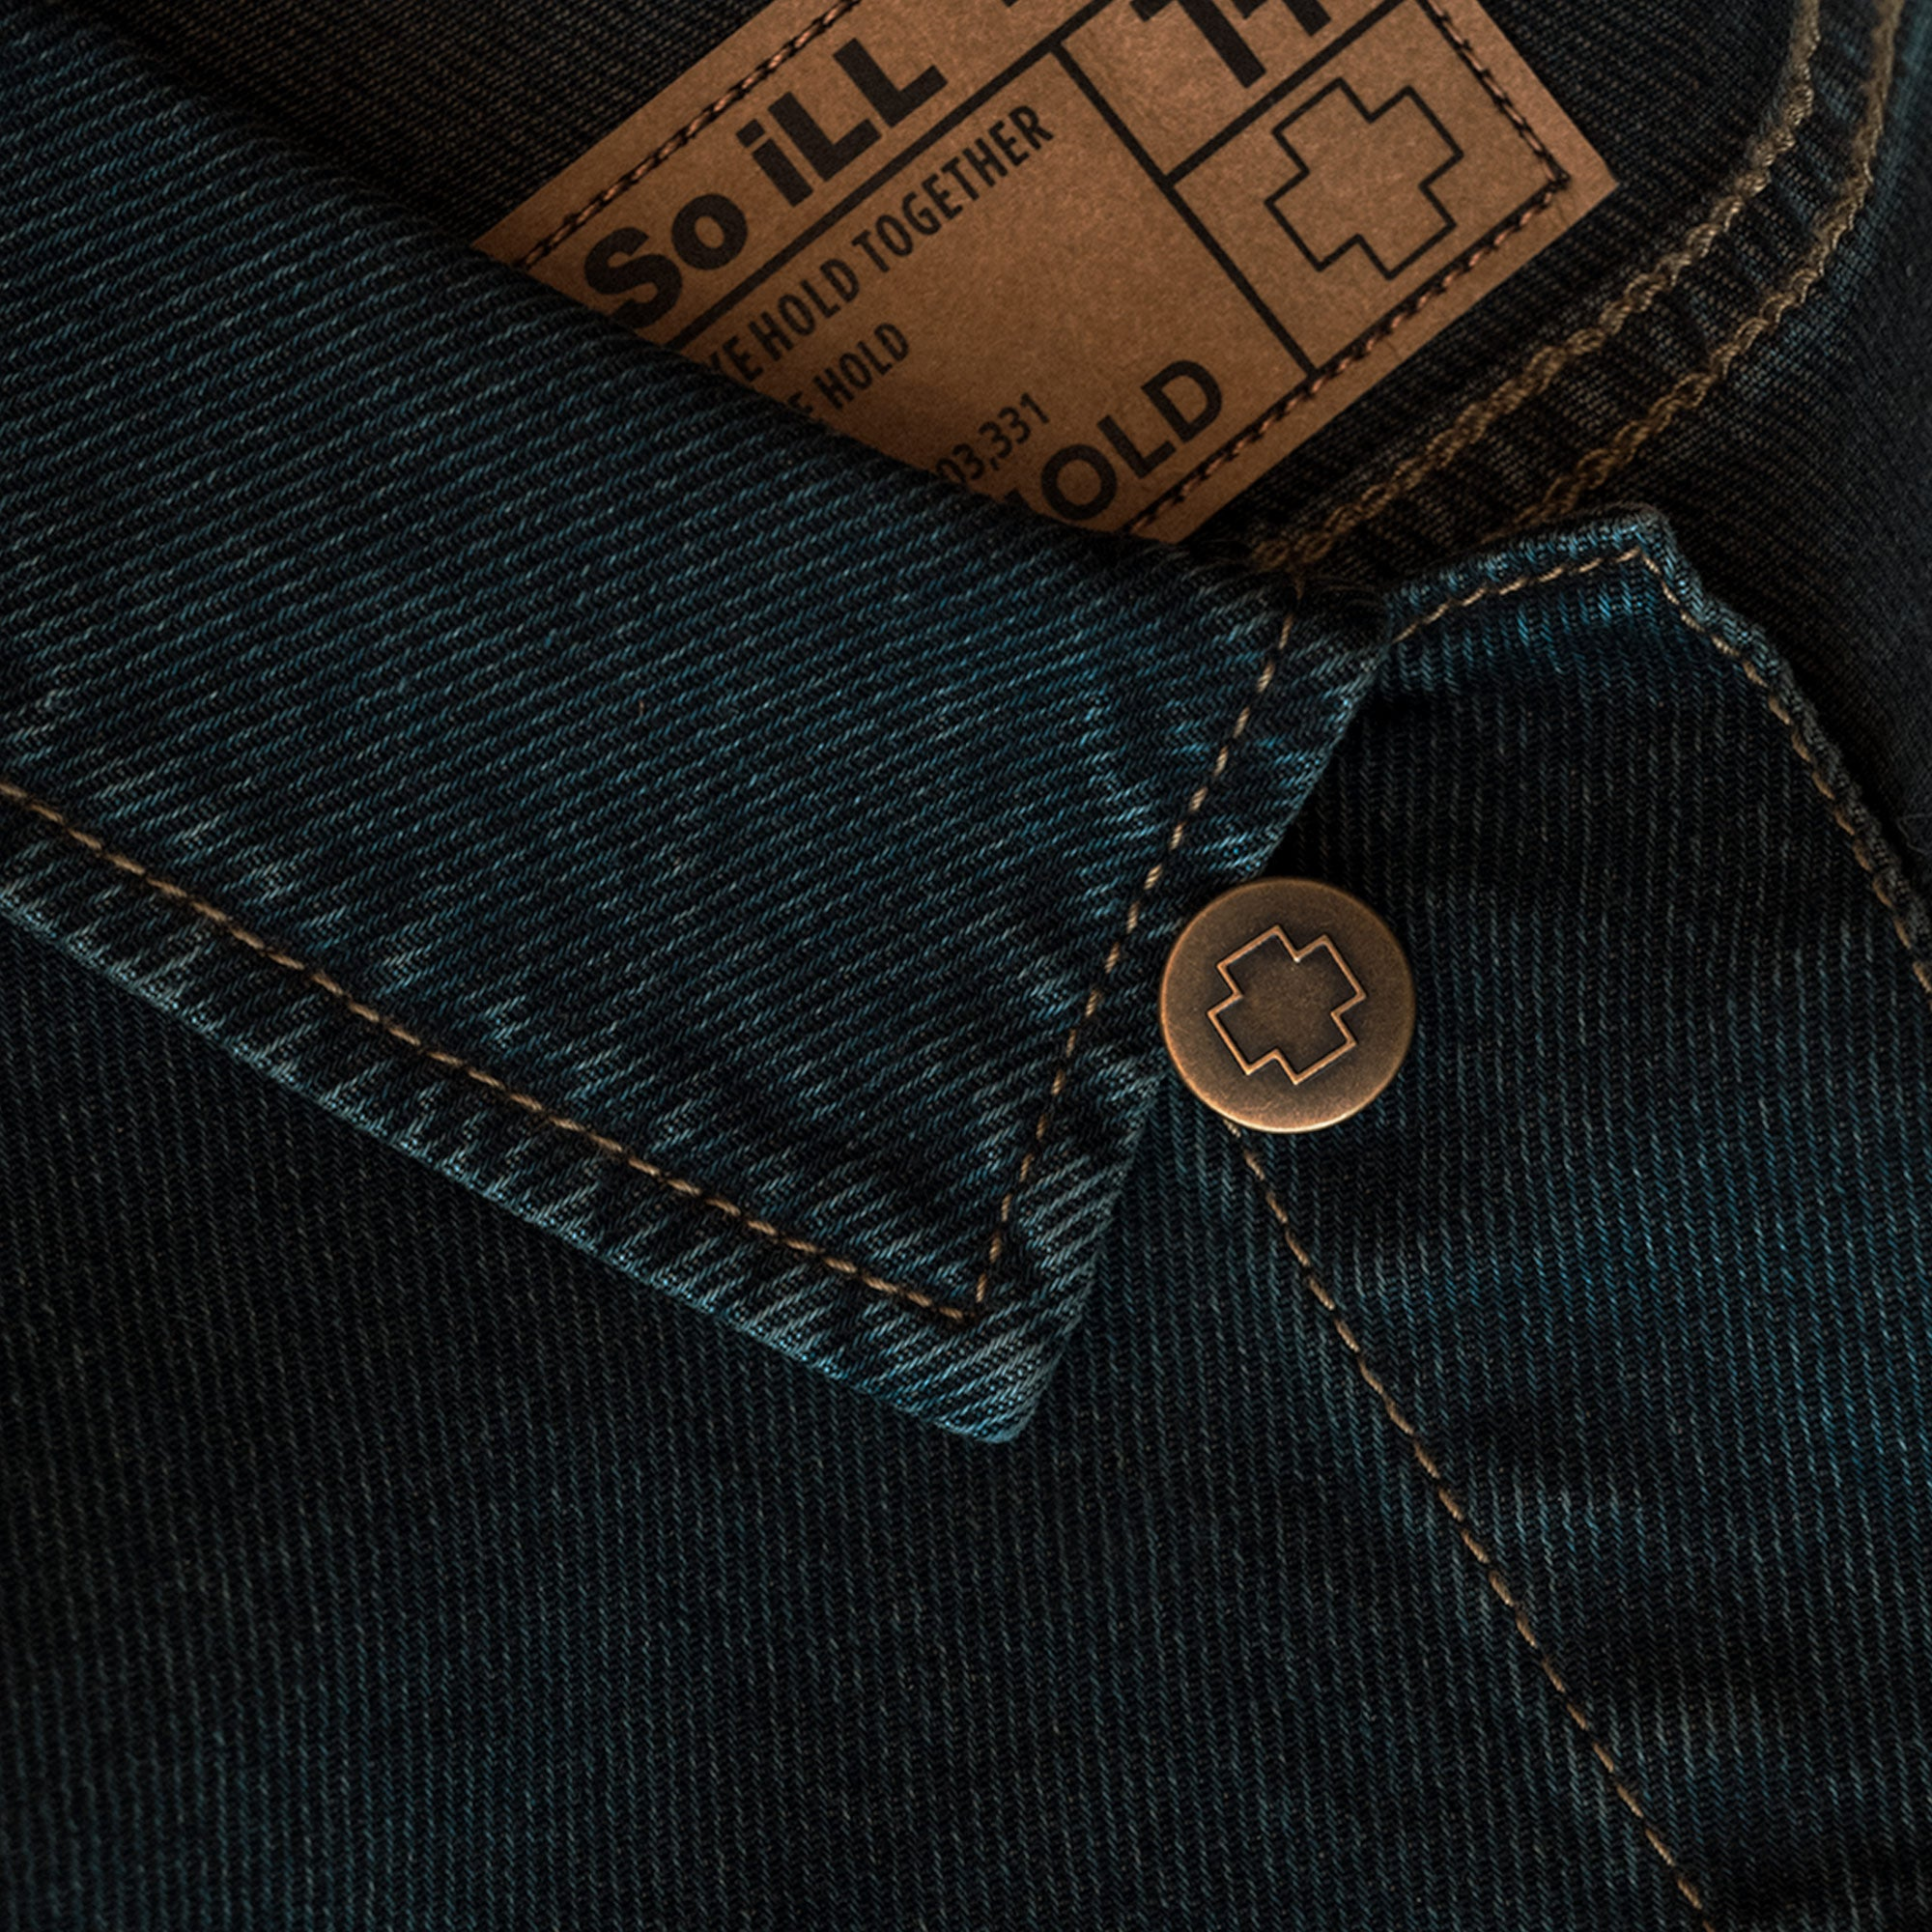 a close shot of the tag and emblazoned button the so ill unisex denim jacket